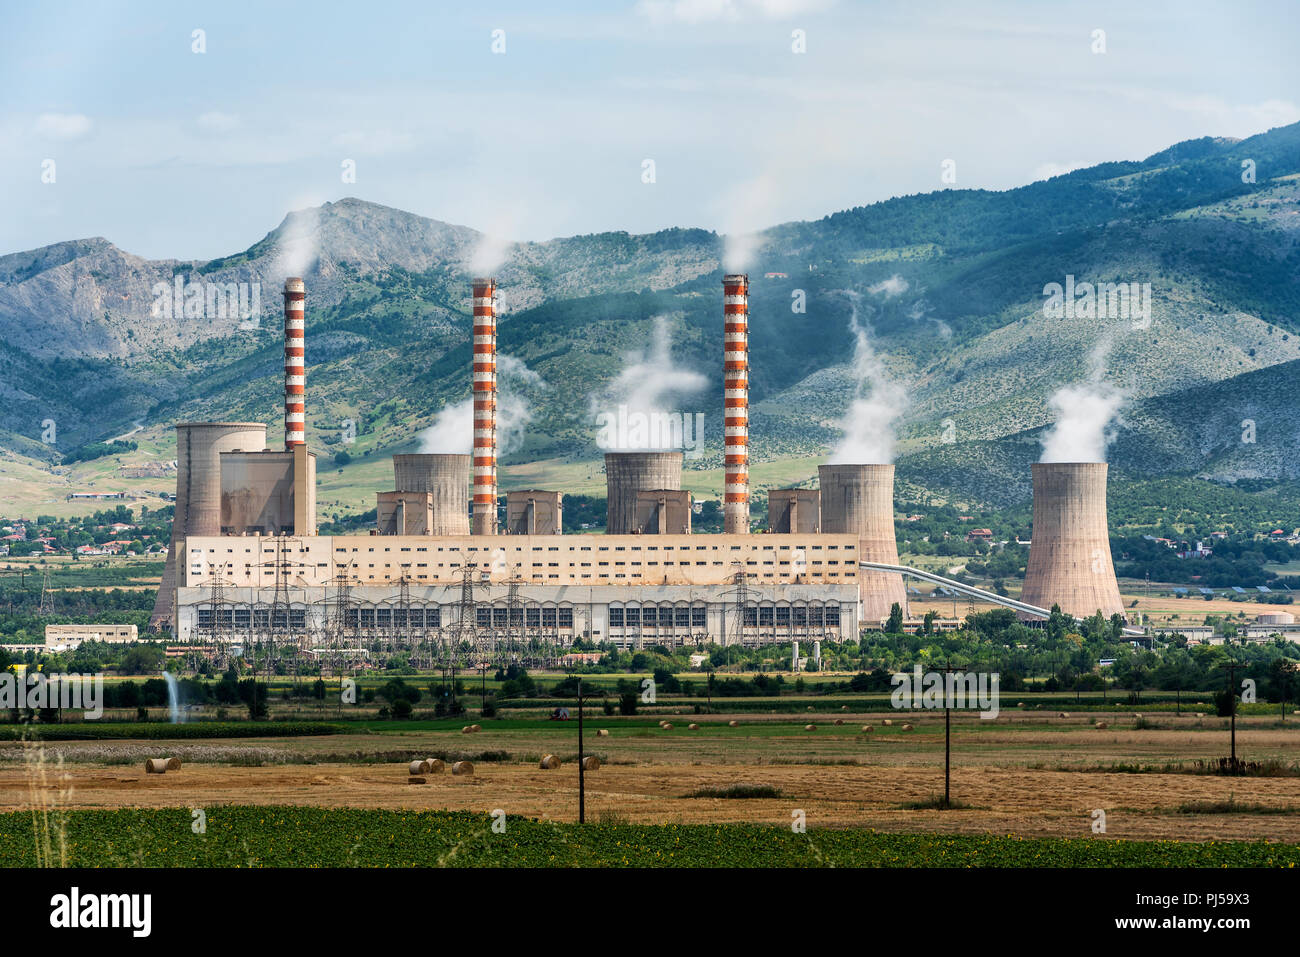 Factory chimneys smoke rising into the sky between wheat field and the hills - Stock Image